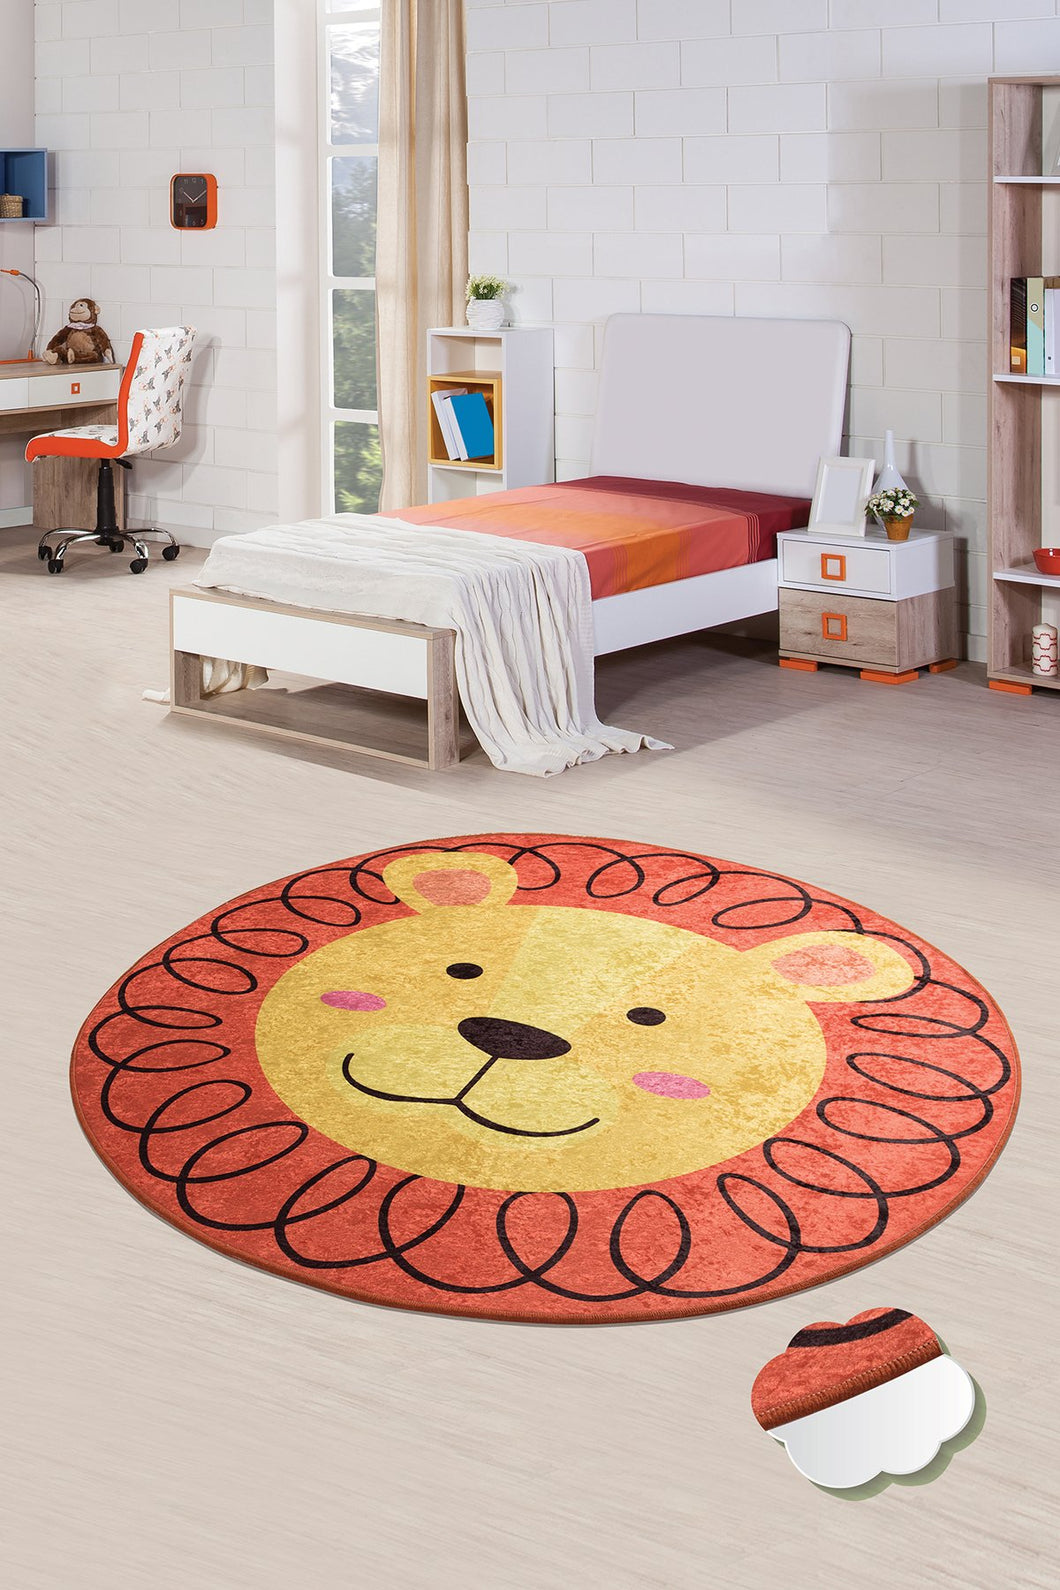 Antdecor Leon Rugs for kids Highway  3'x 5' 39